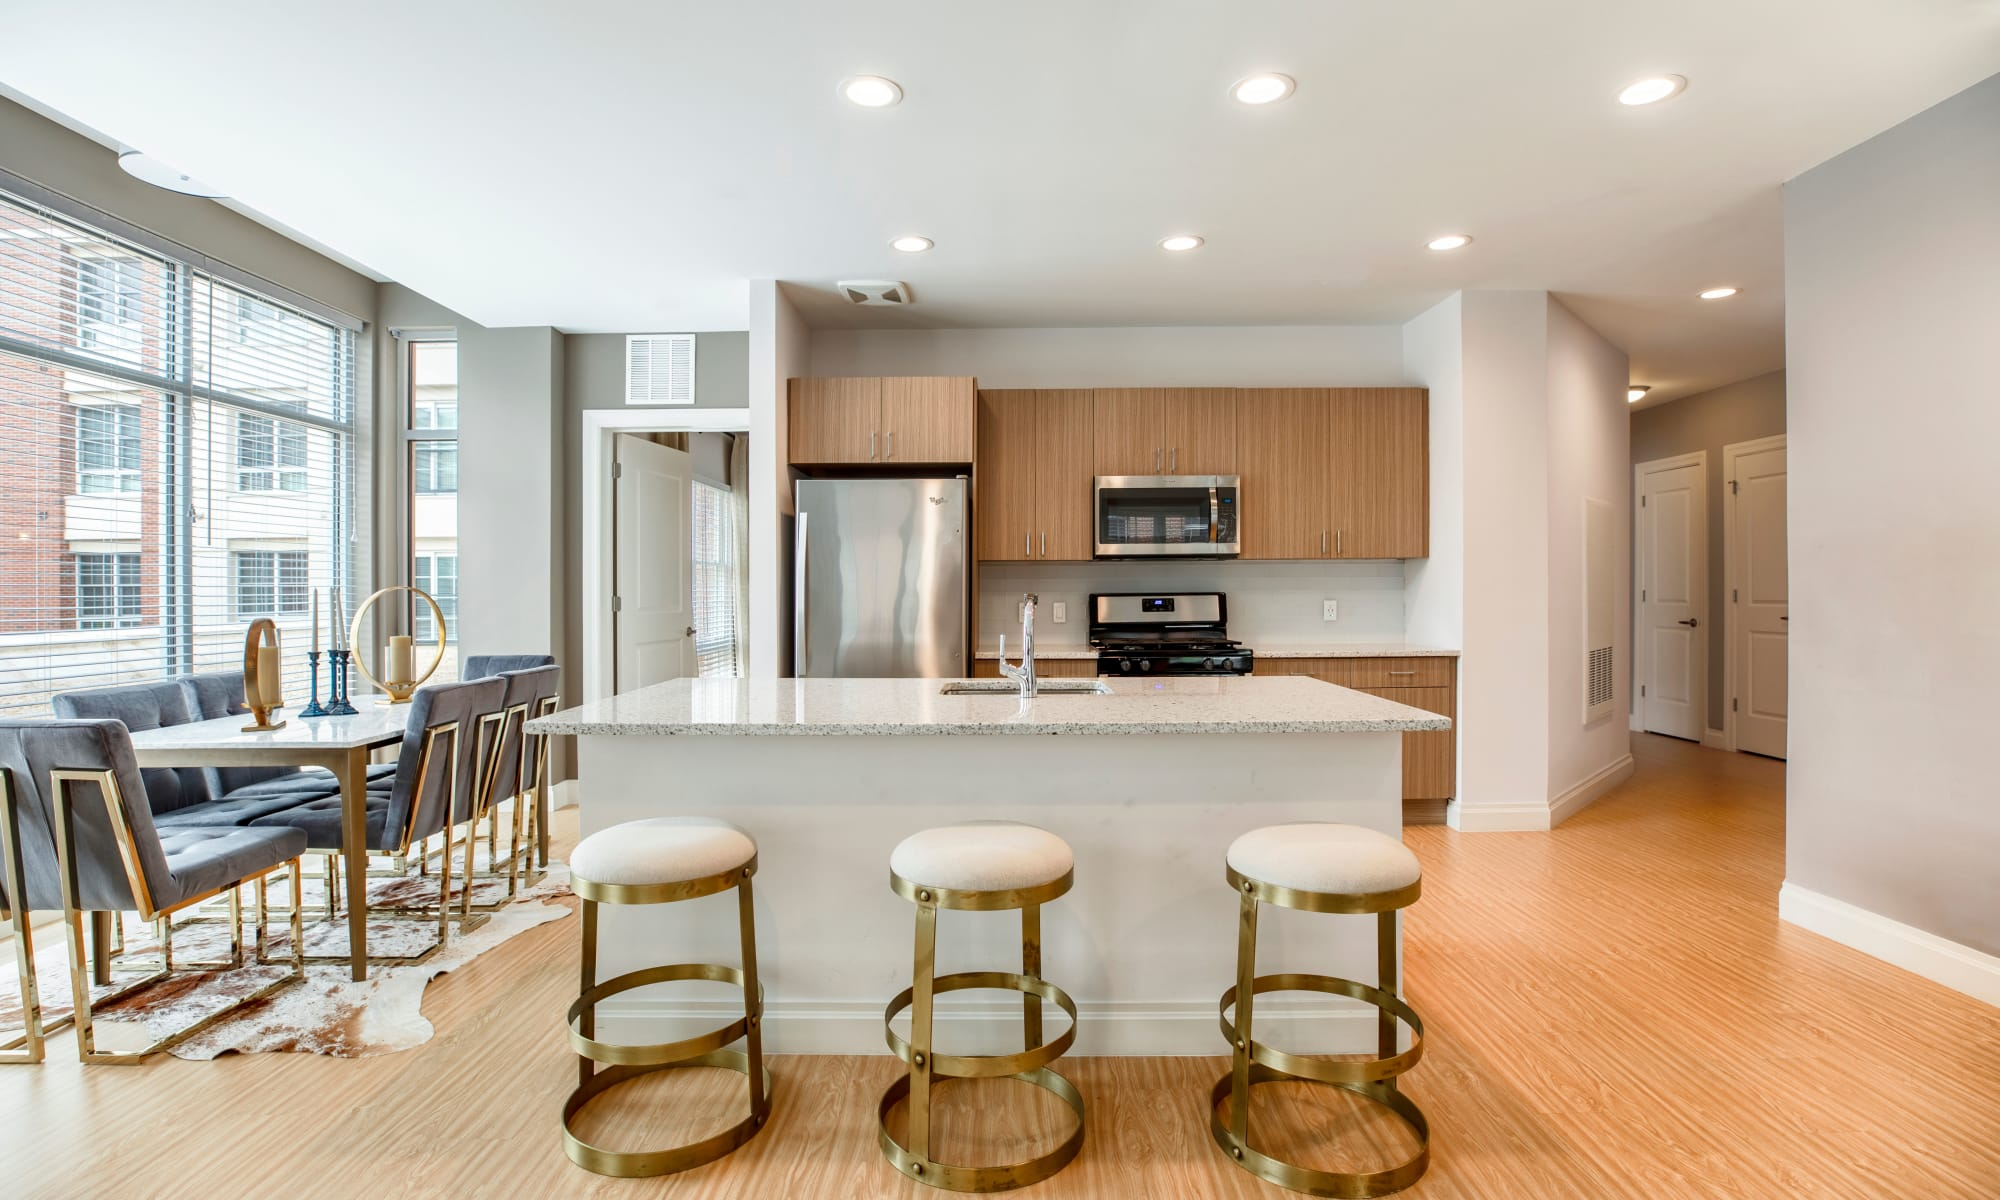 Kitchen at The Harper at Harmon Meadow in Secaucus, New Jersey